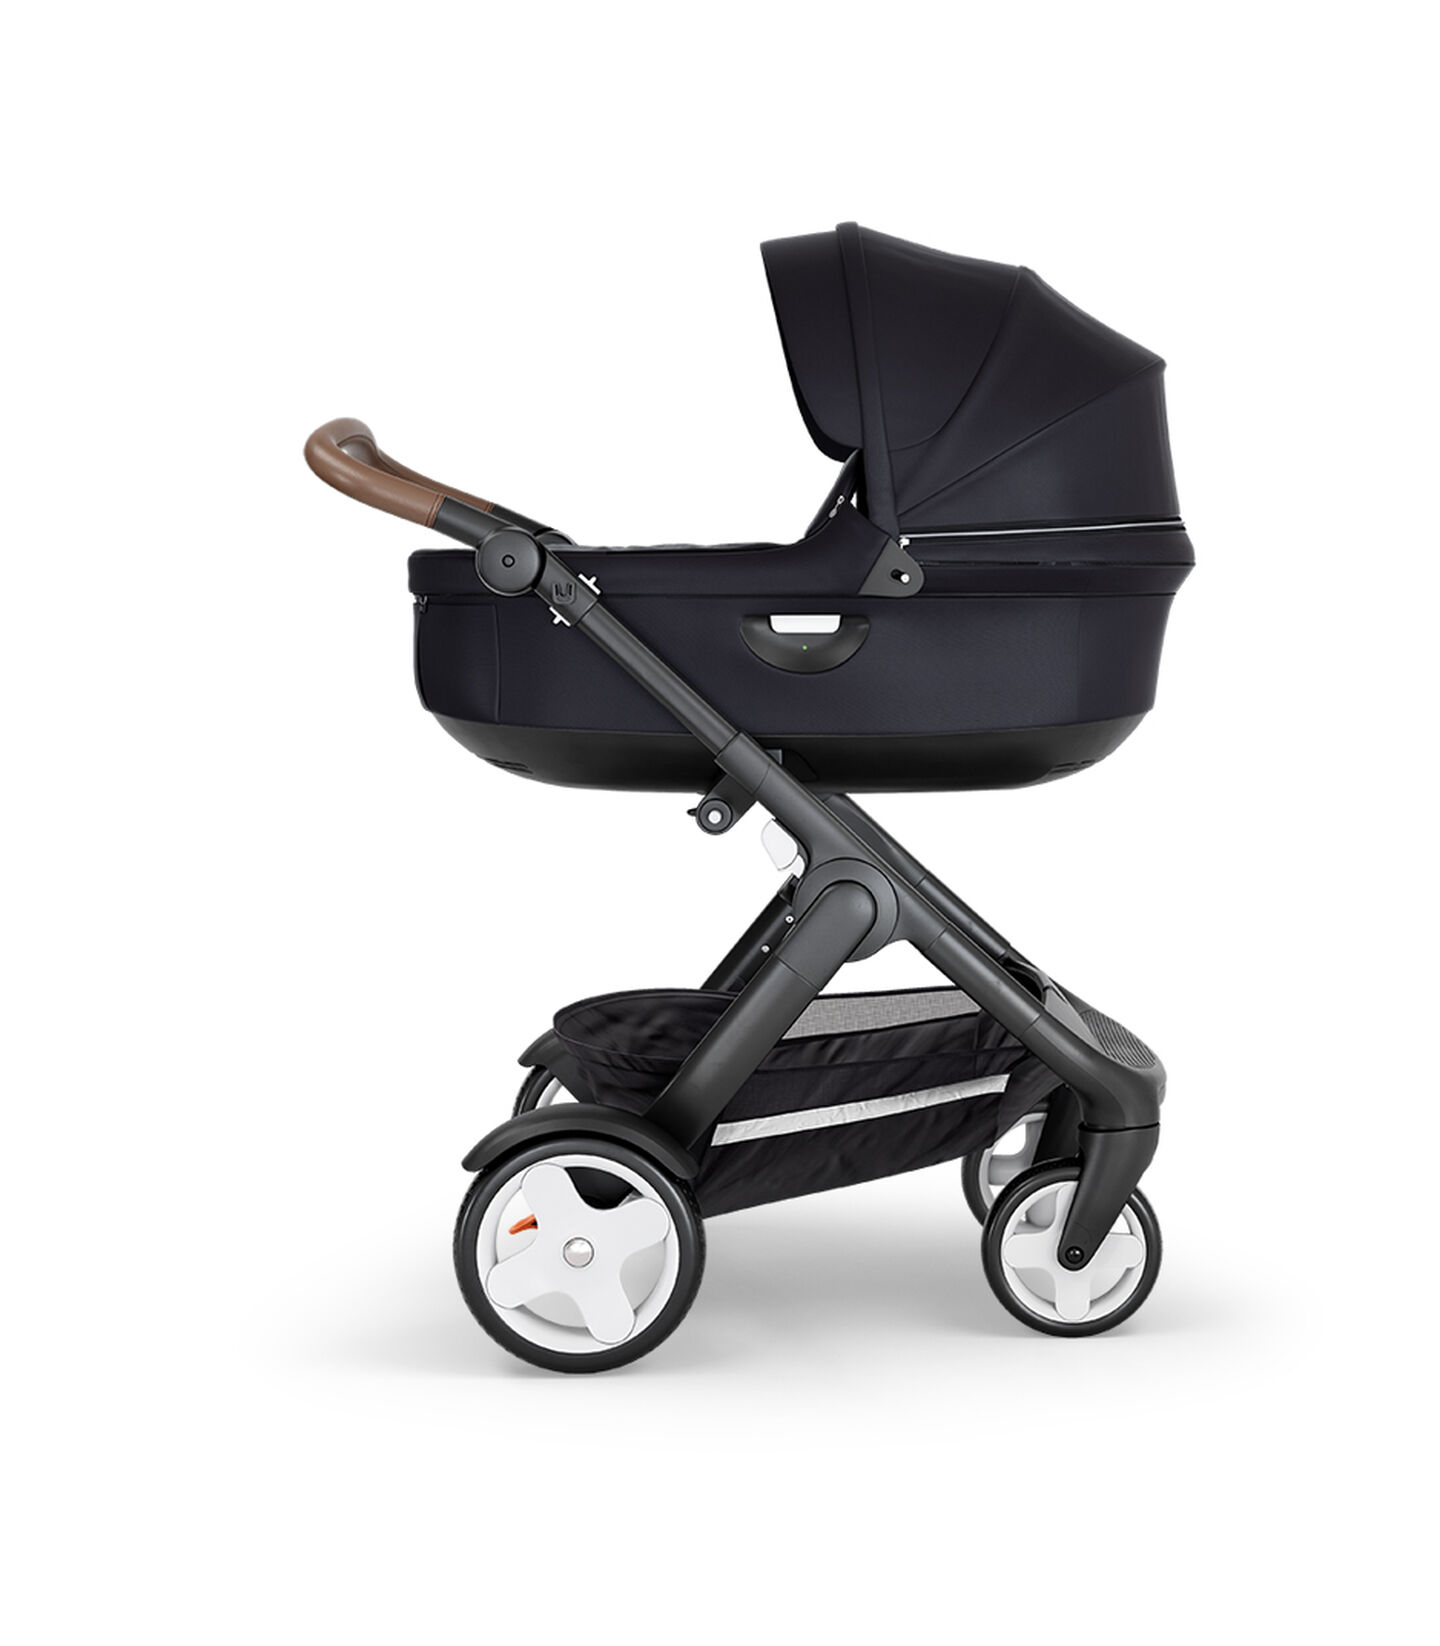 Stokke® Trailz™ with Black Chassis, Brown Leatherette and Classic Wheels. Stokke® Stroller Carry Cot, Black.